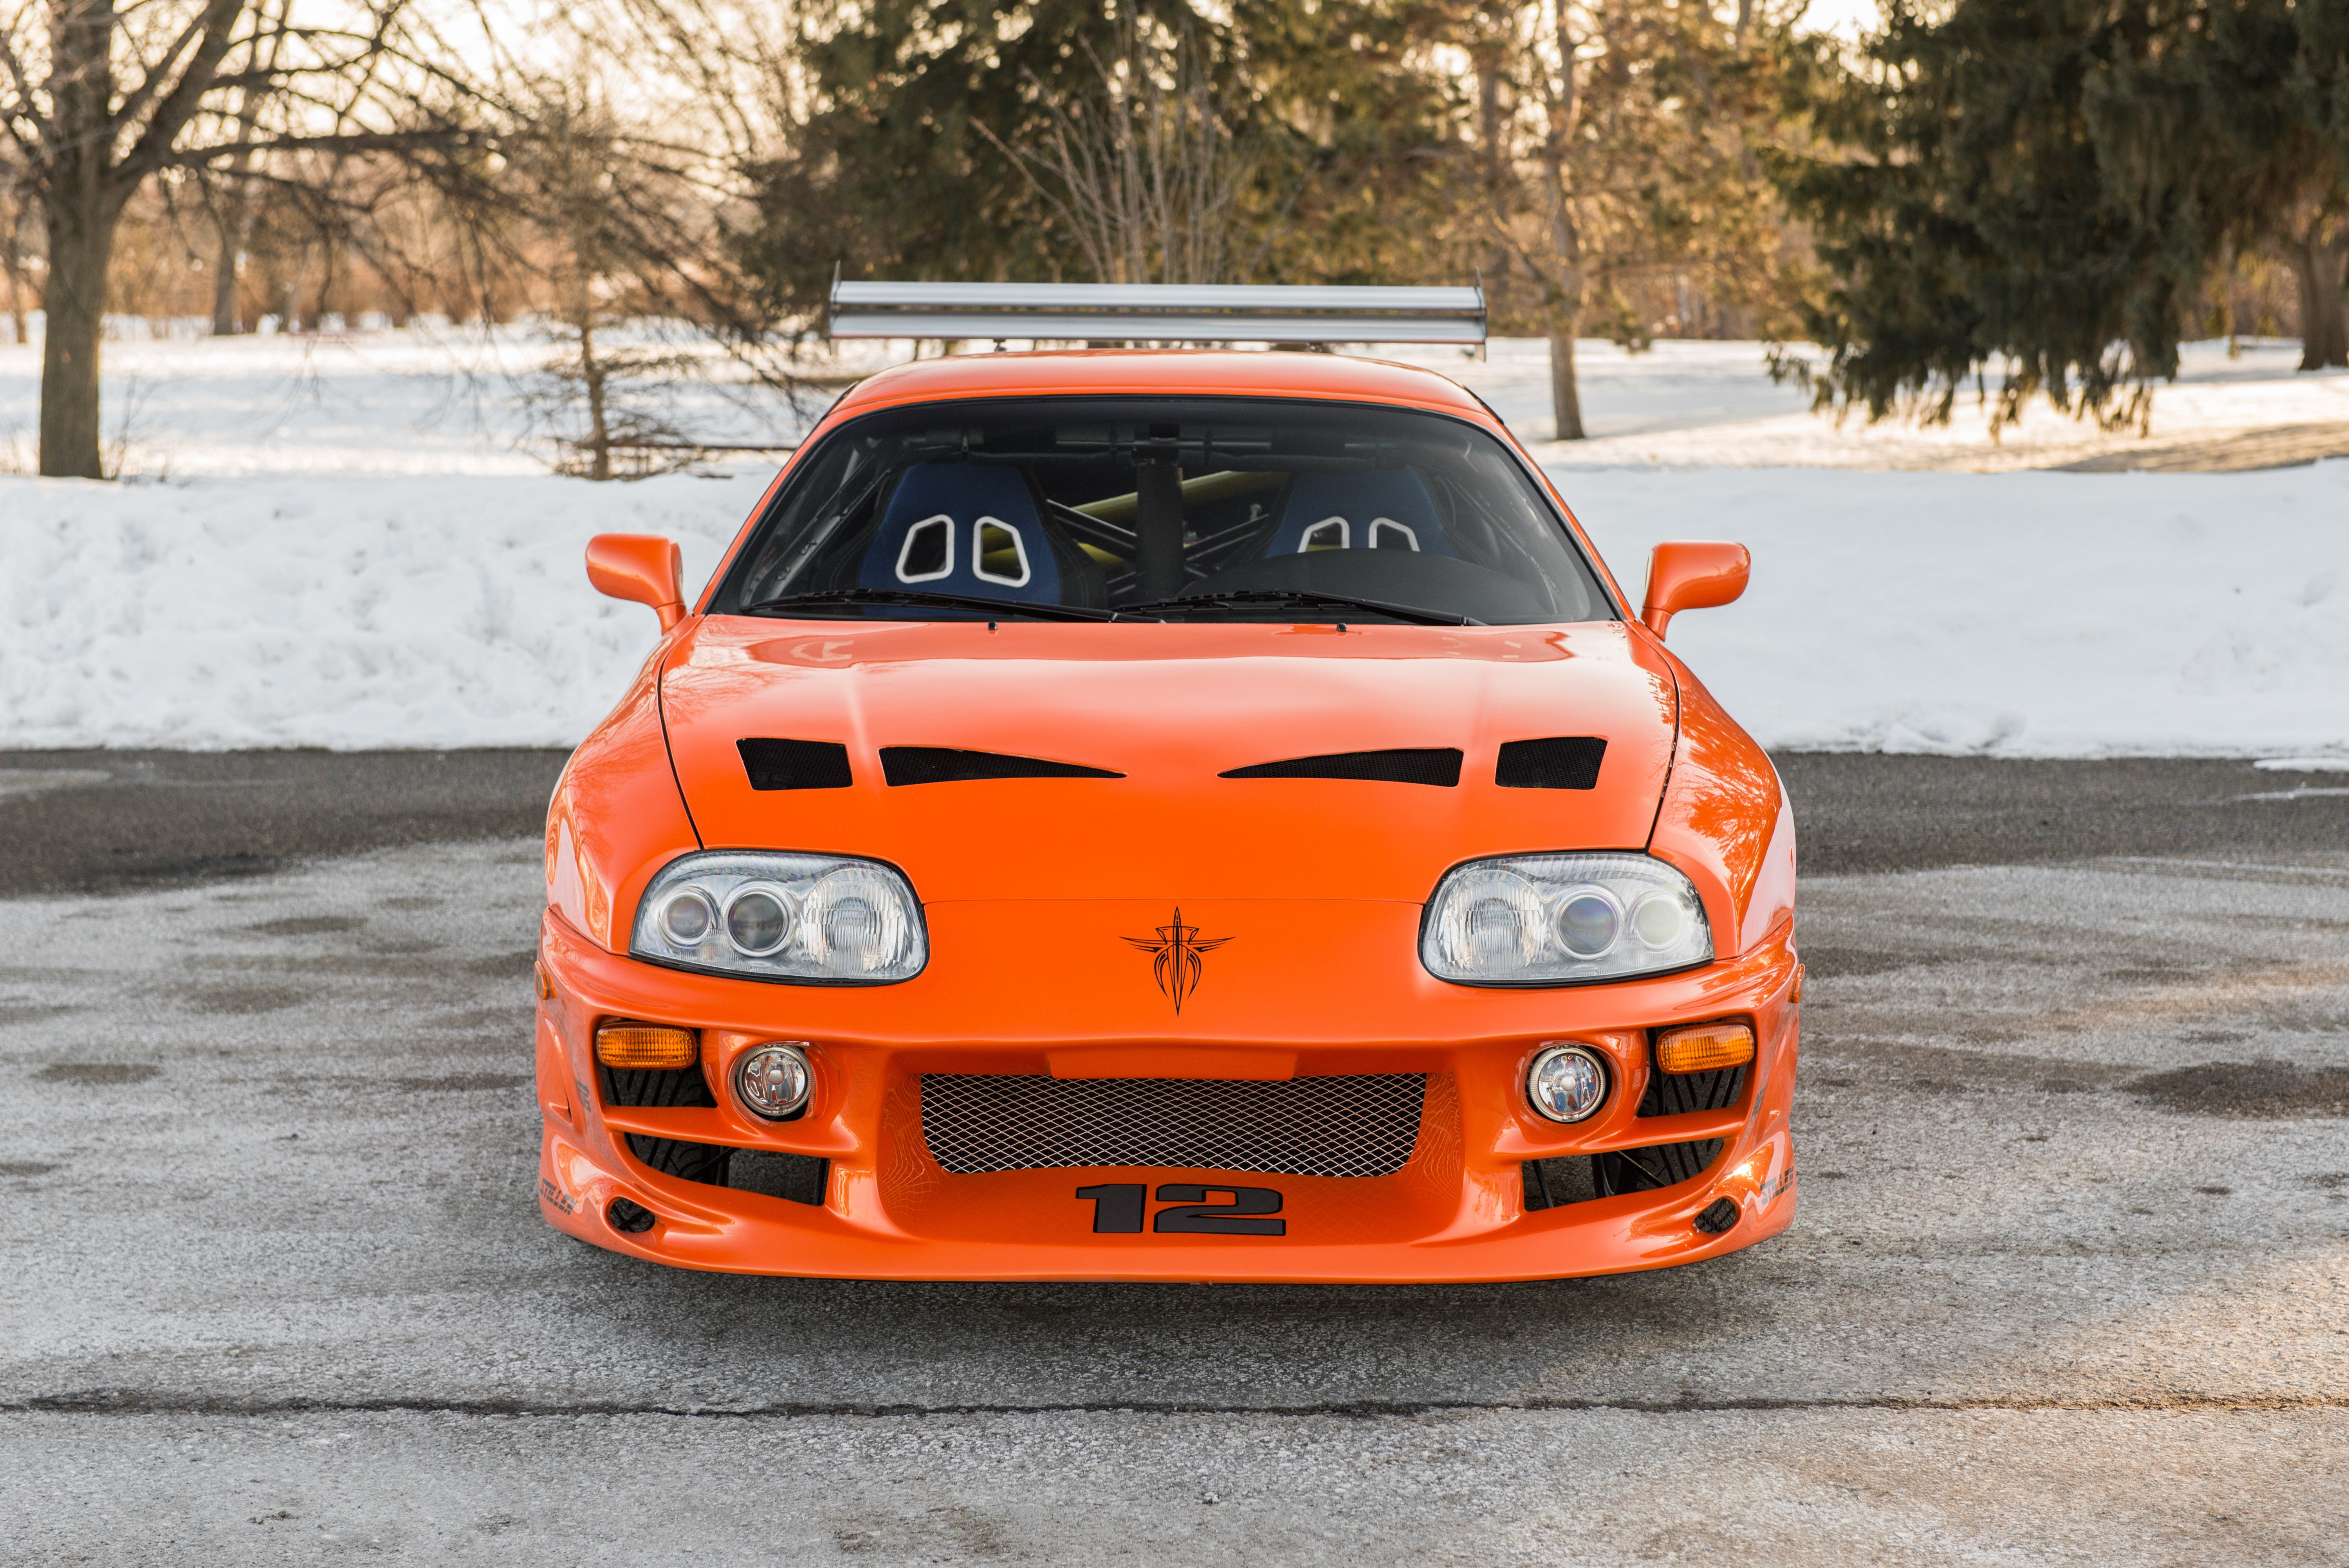 Toyota Supra The Fast and the Furious - 3446.8KB